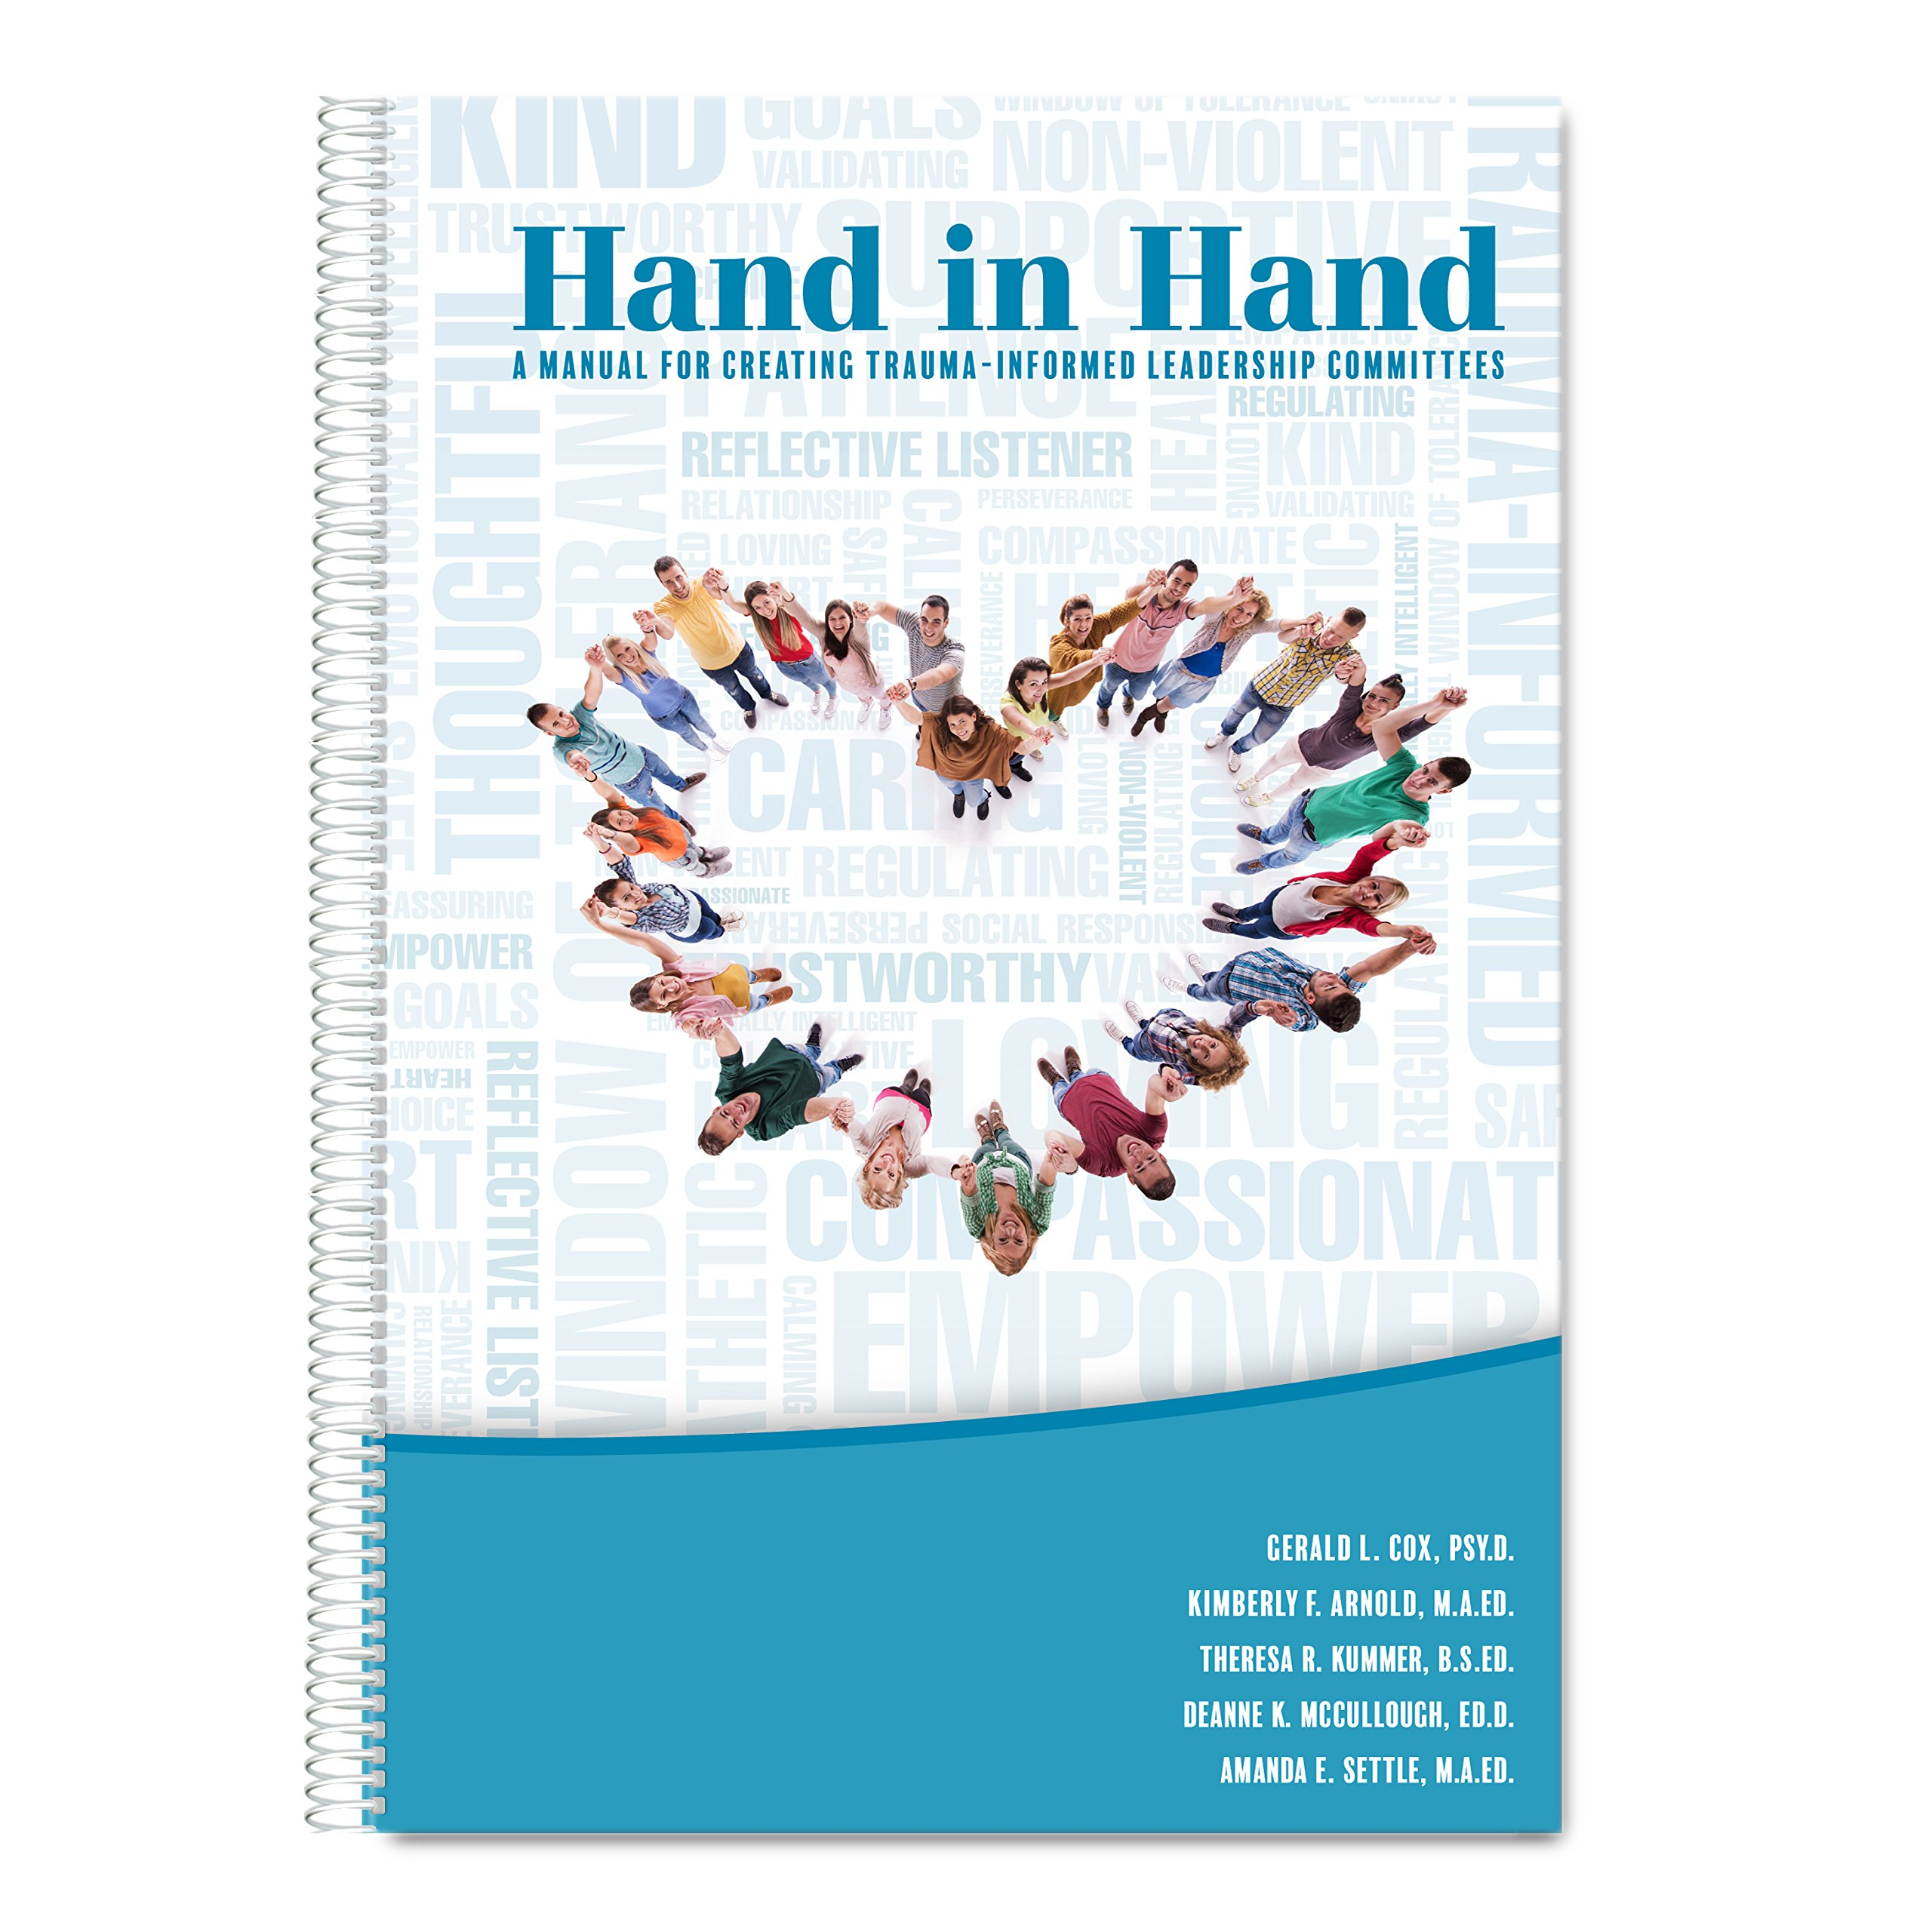 Hand in Hand: A Manual for Creating Trauma-Informed Leadership Committees:  Gerald L. Cox PsyD., Kimberly F. Arnold M.A.Ed., Theresa R. Kummer B.S.Ed.,  ...